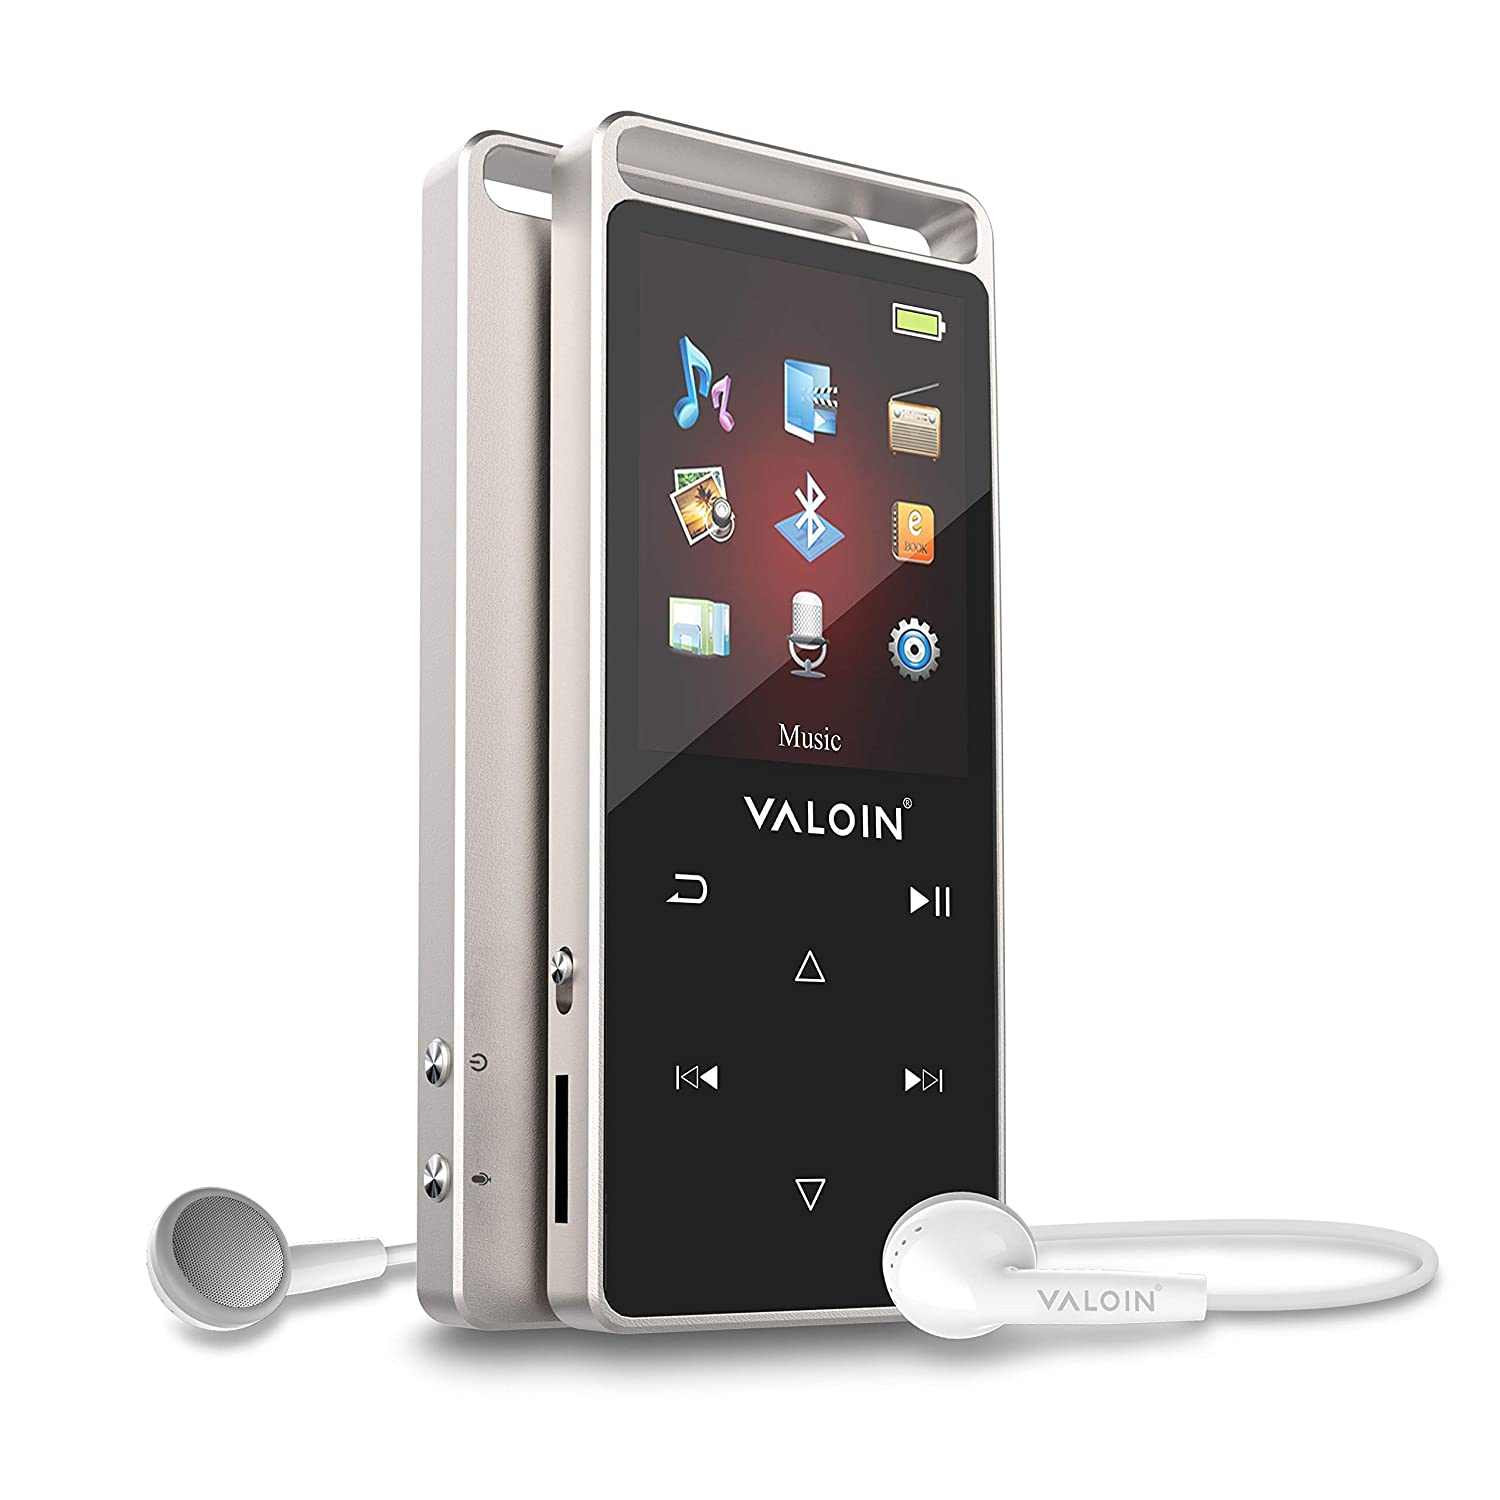 MP3 Player with Bluetooth 4.0 Valoin 8GB Metal Shell Lossless Sound Digital Audio Player